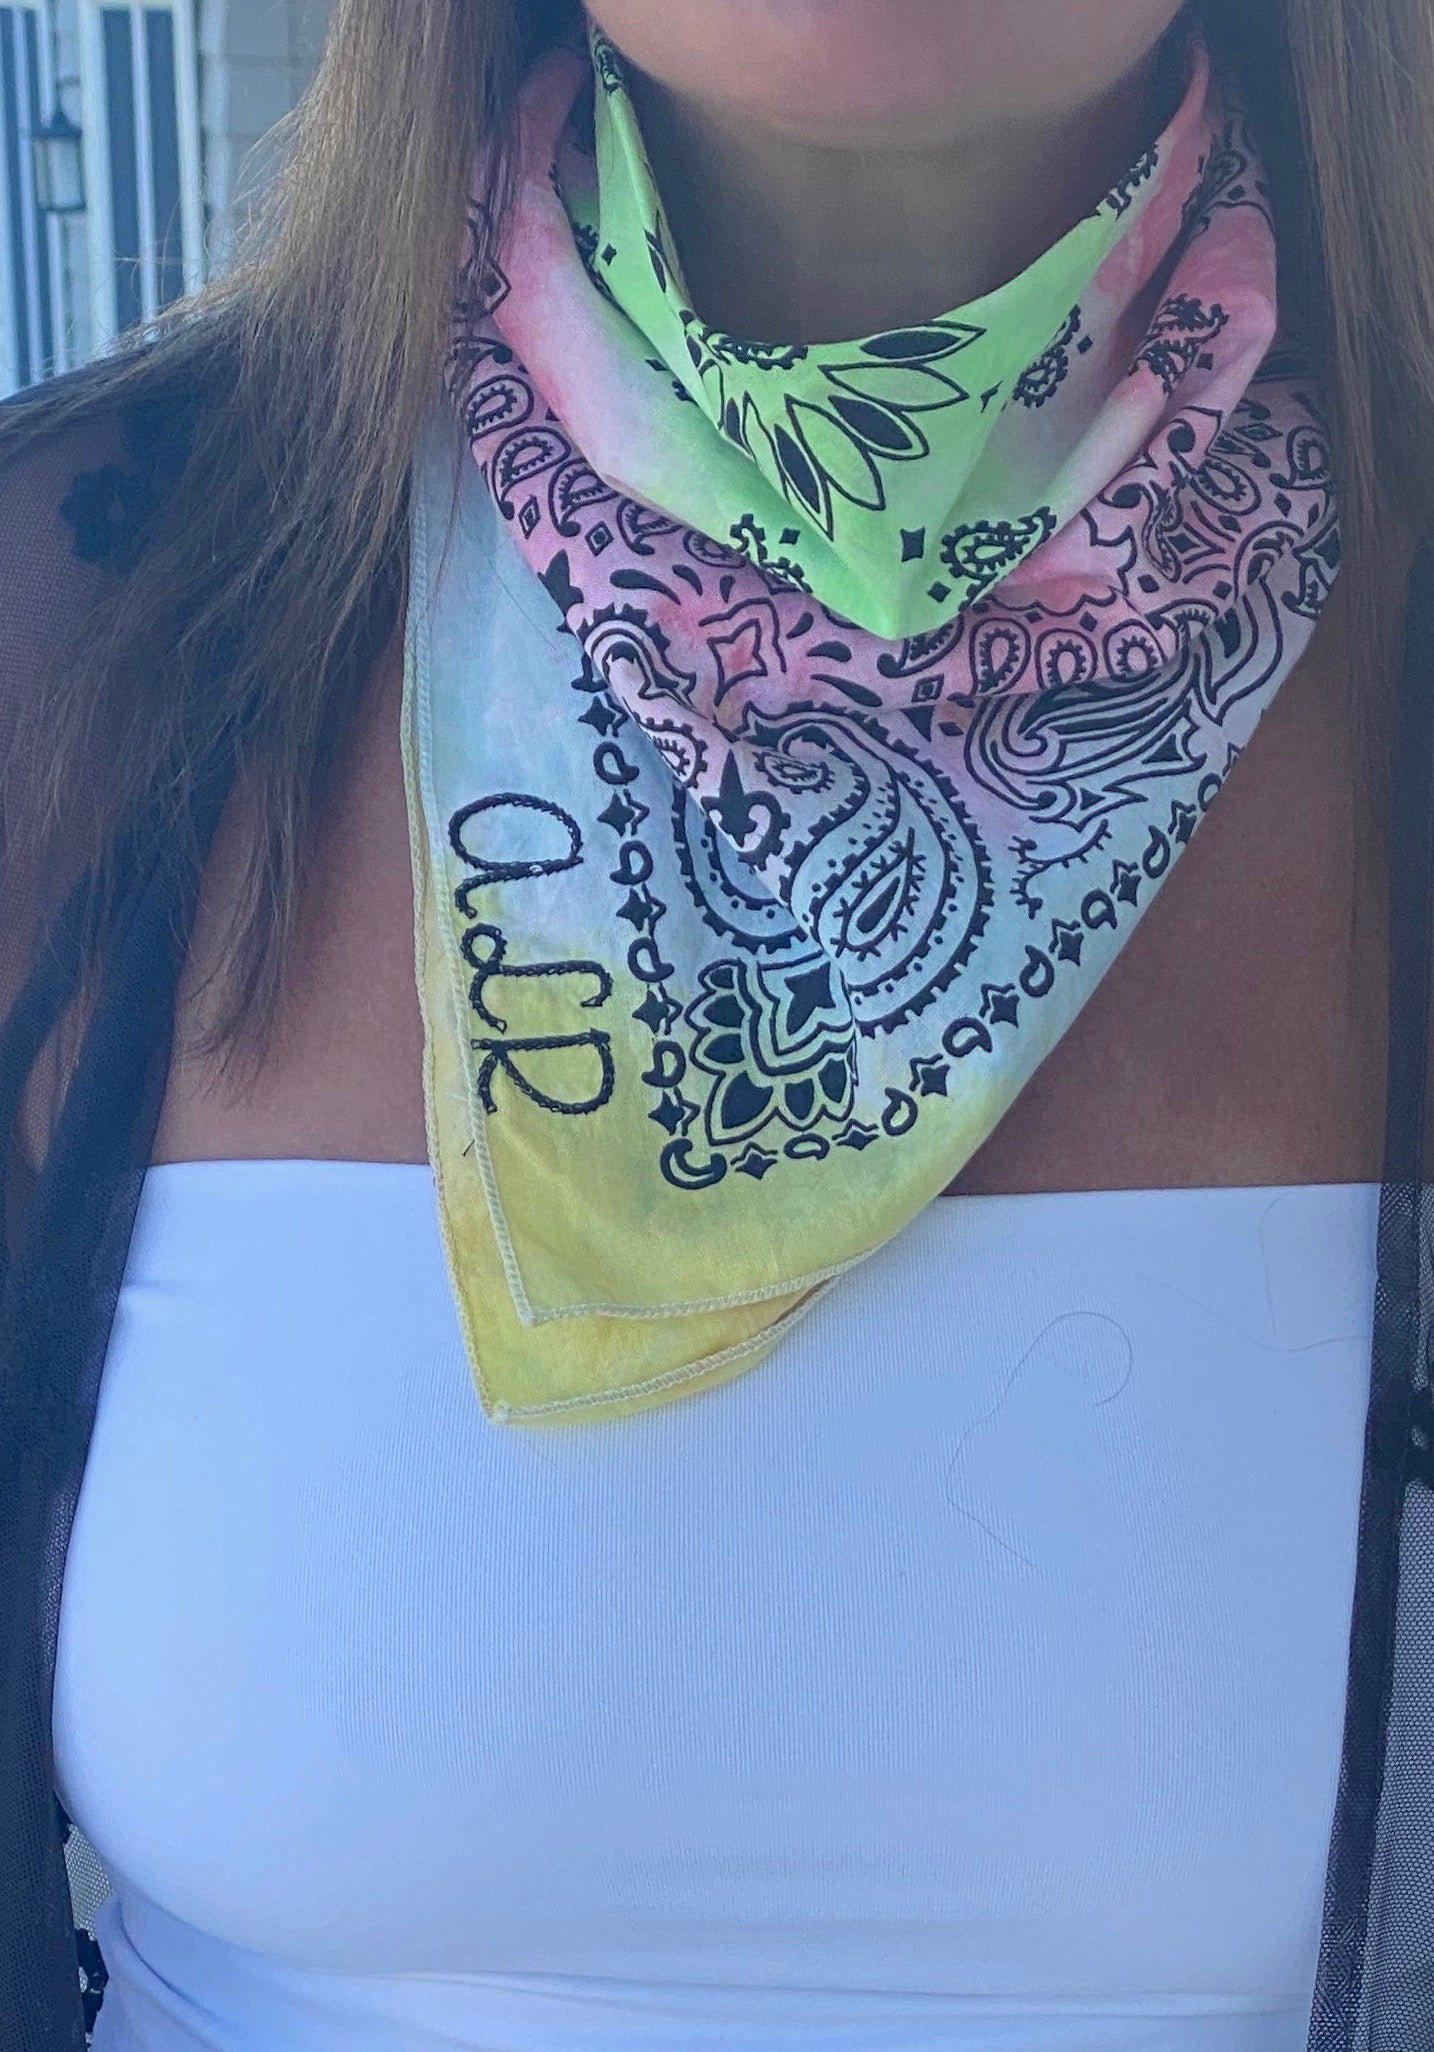 Personalized Bandana and Face Covering